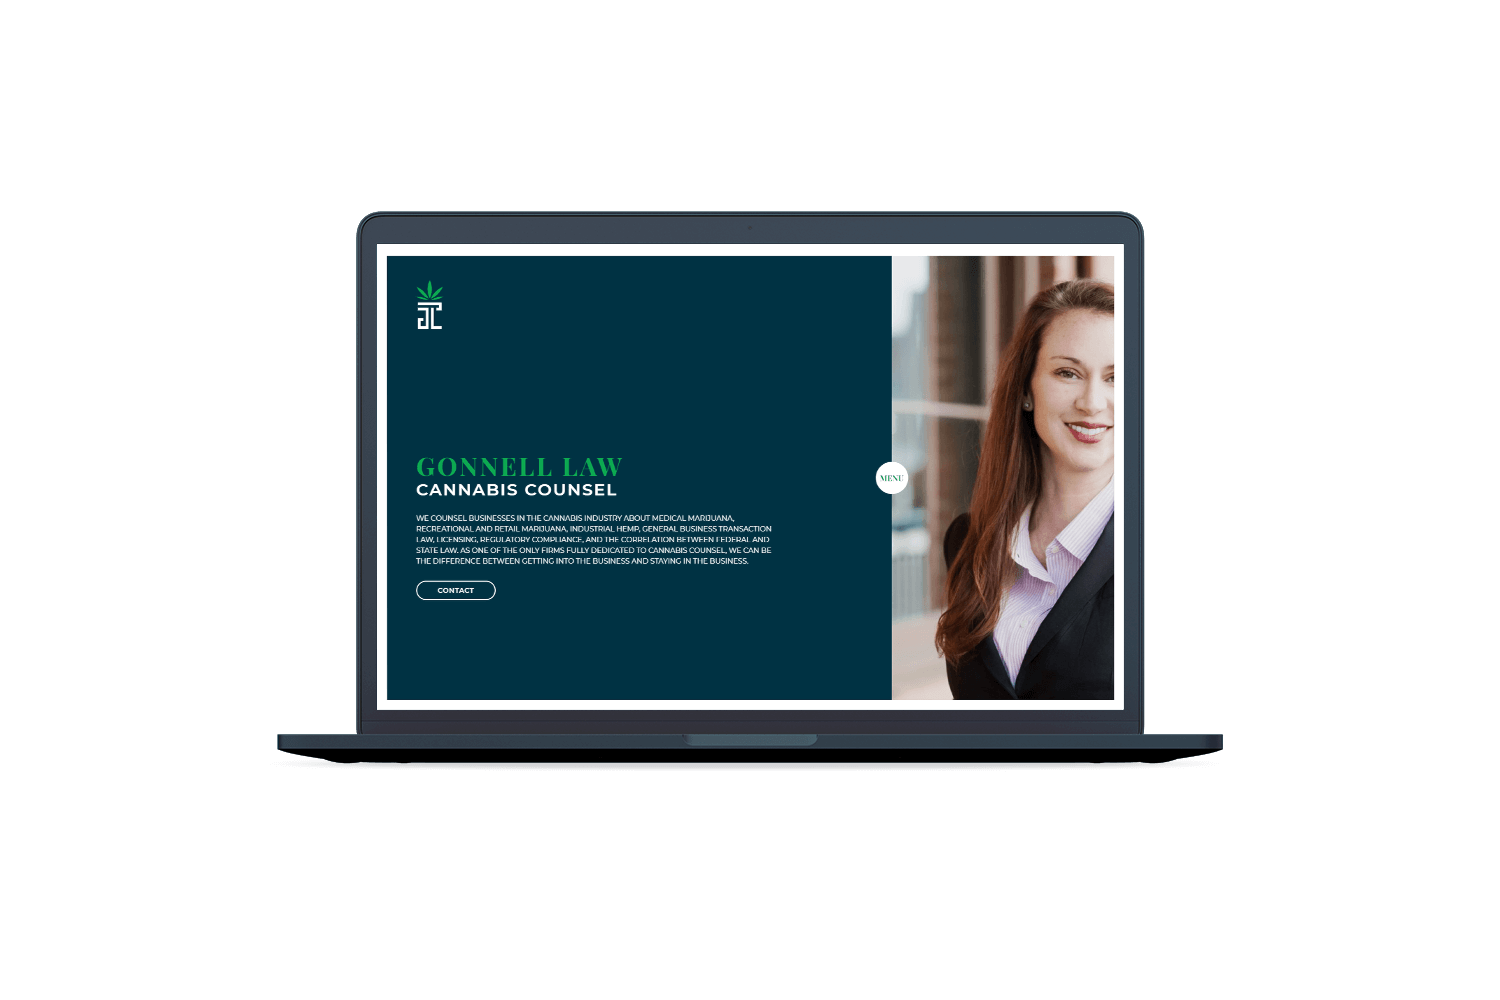 Gonnell Law web design